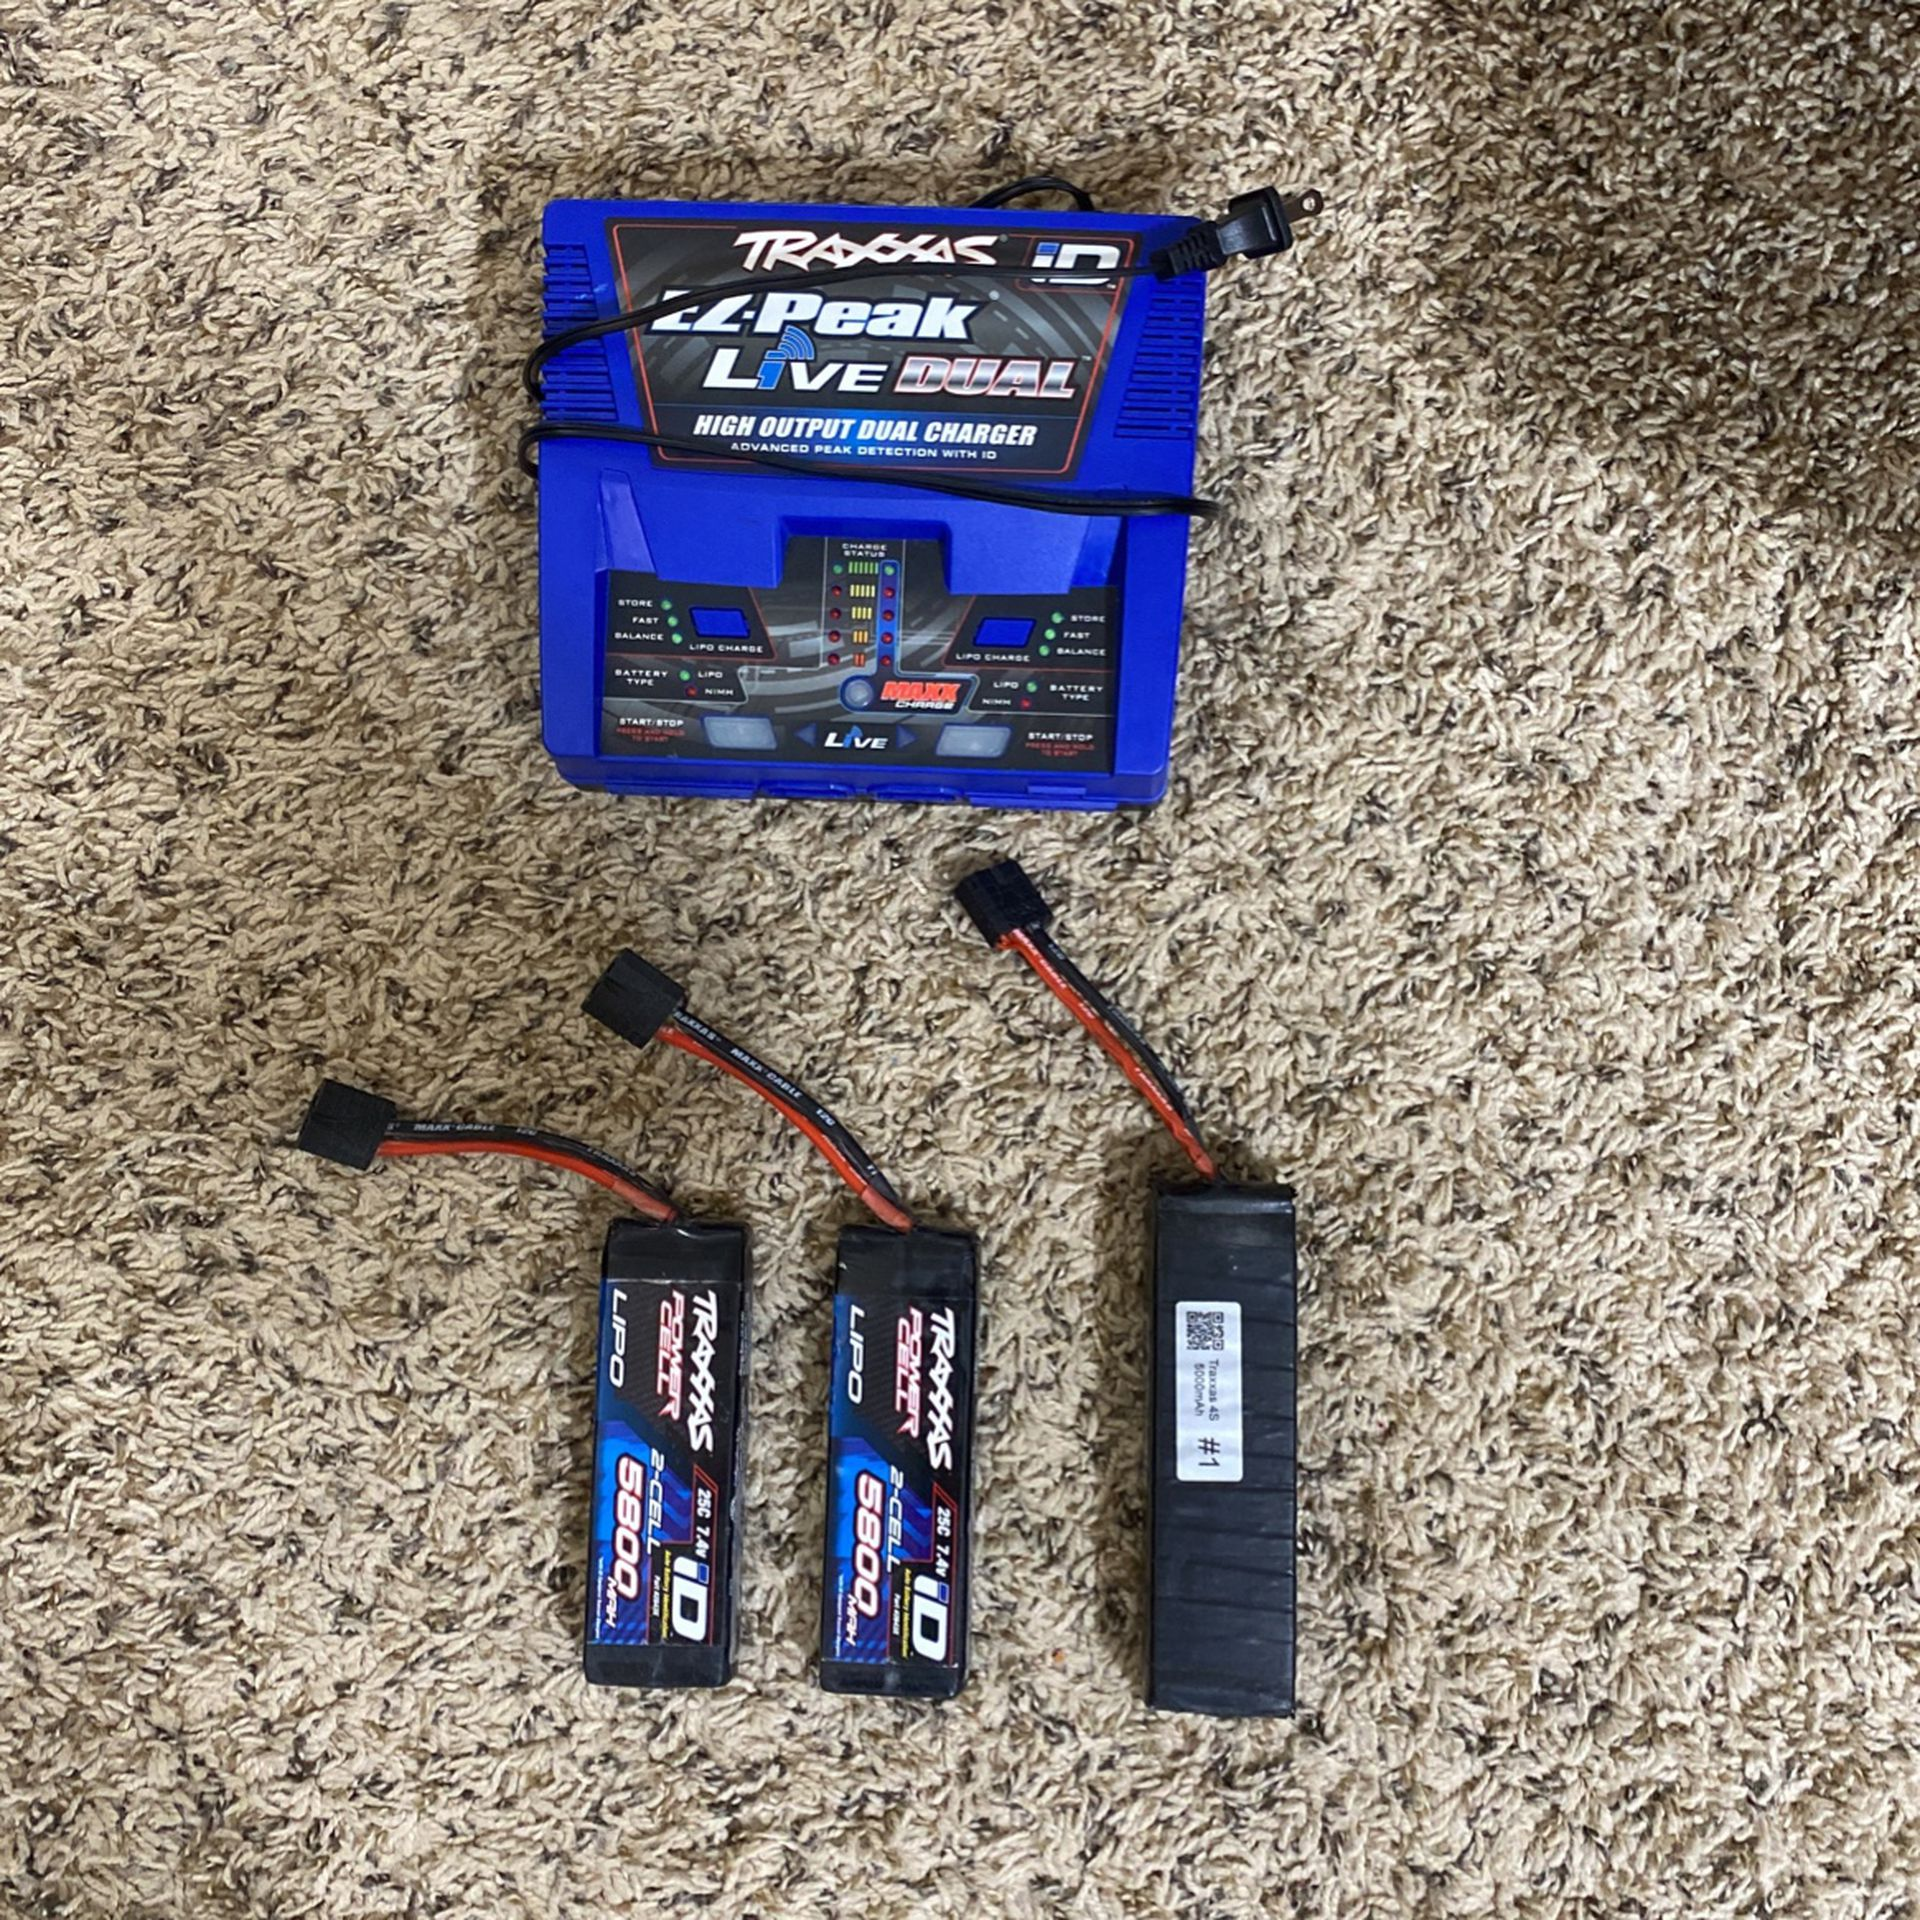 Traxxas Ez-Peak Live Dual charger and 2 2s 5800 MAH battery's and One 4s 5000 MAH battery